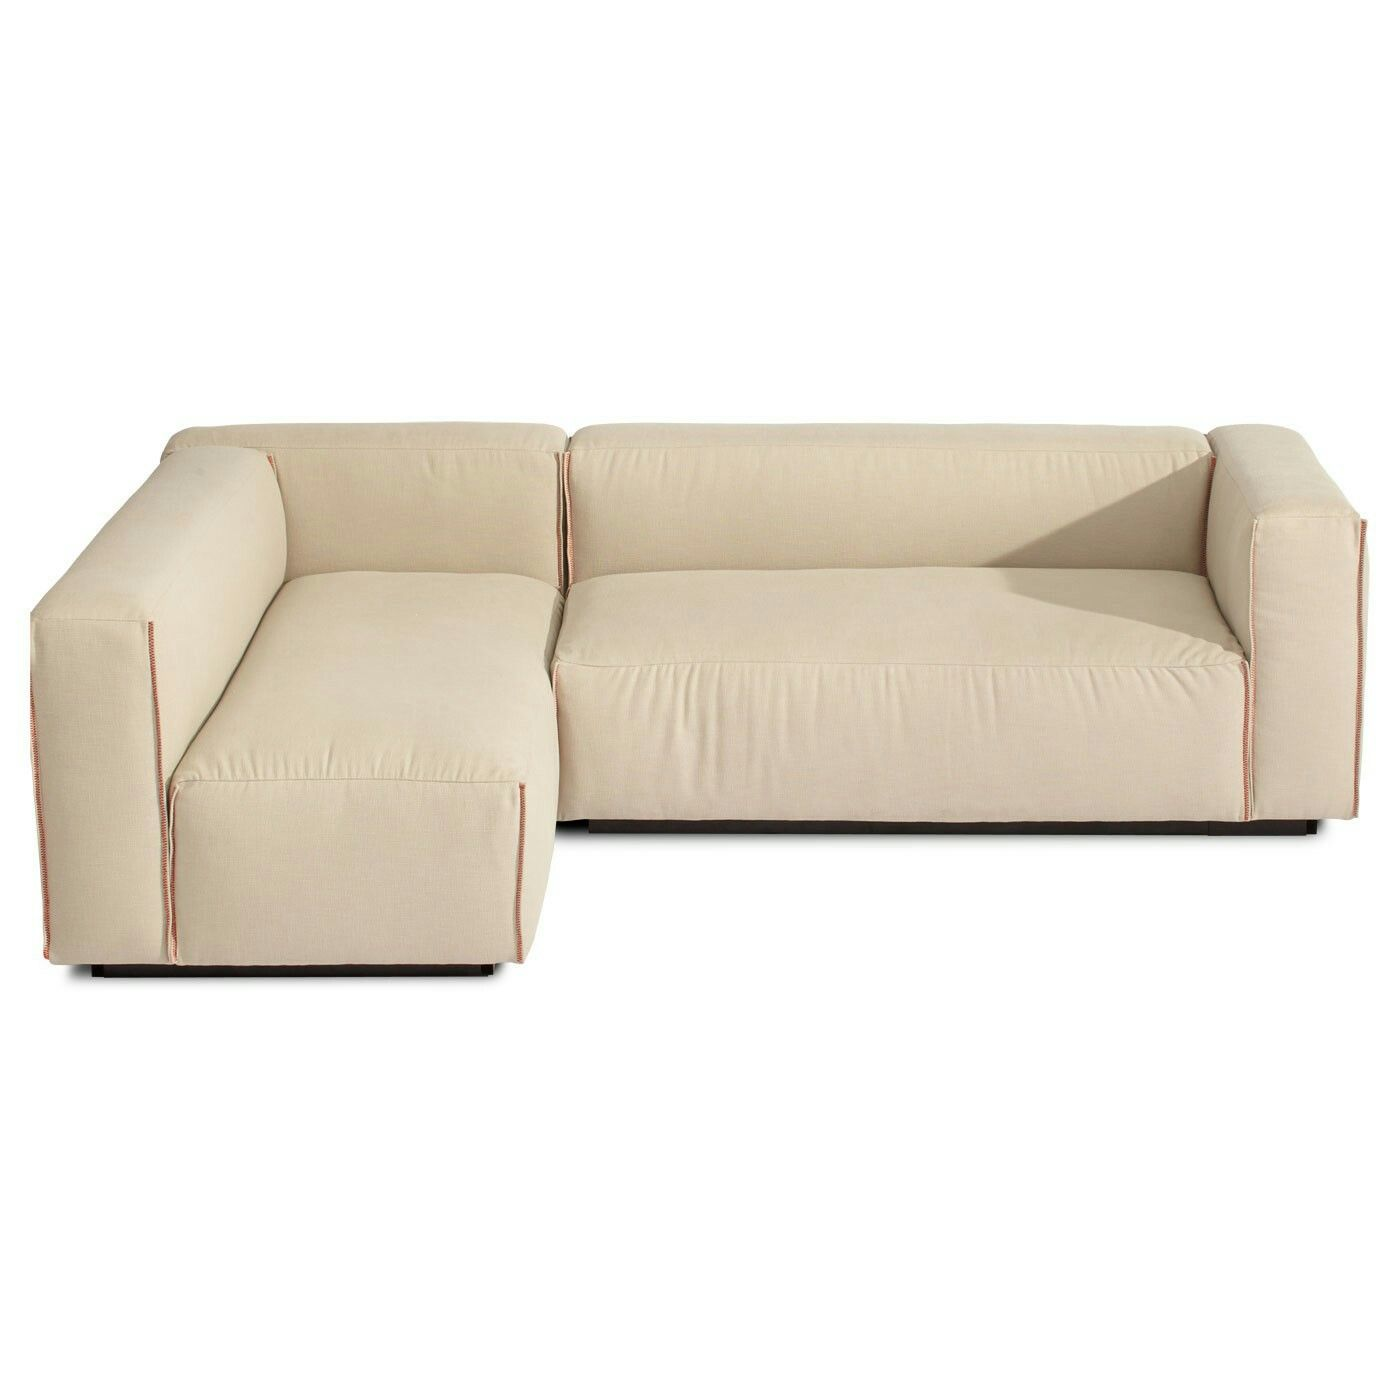 Small Sectional Sofa Modern leather sectional sofa